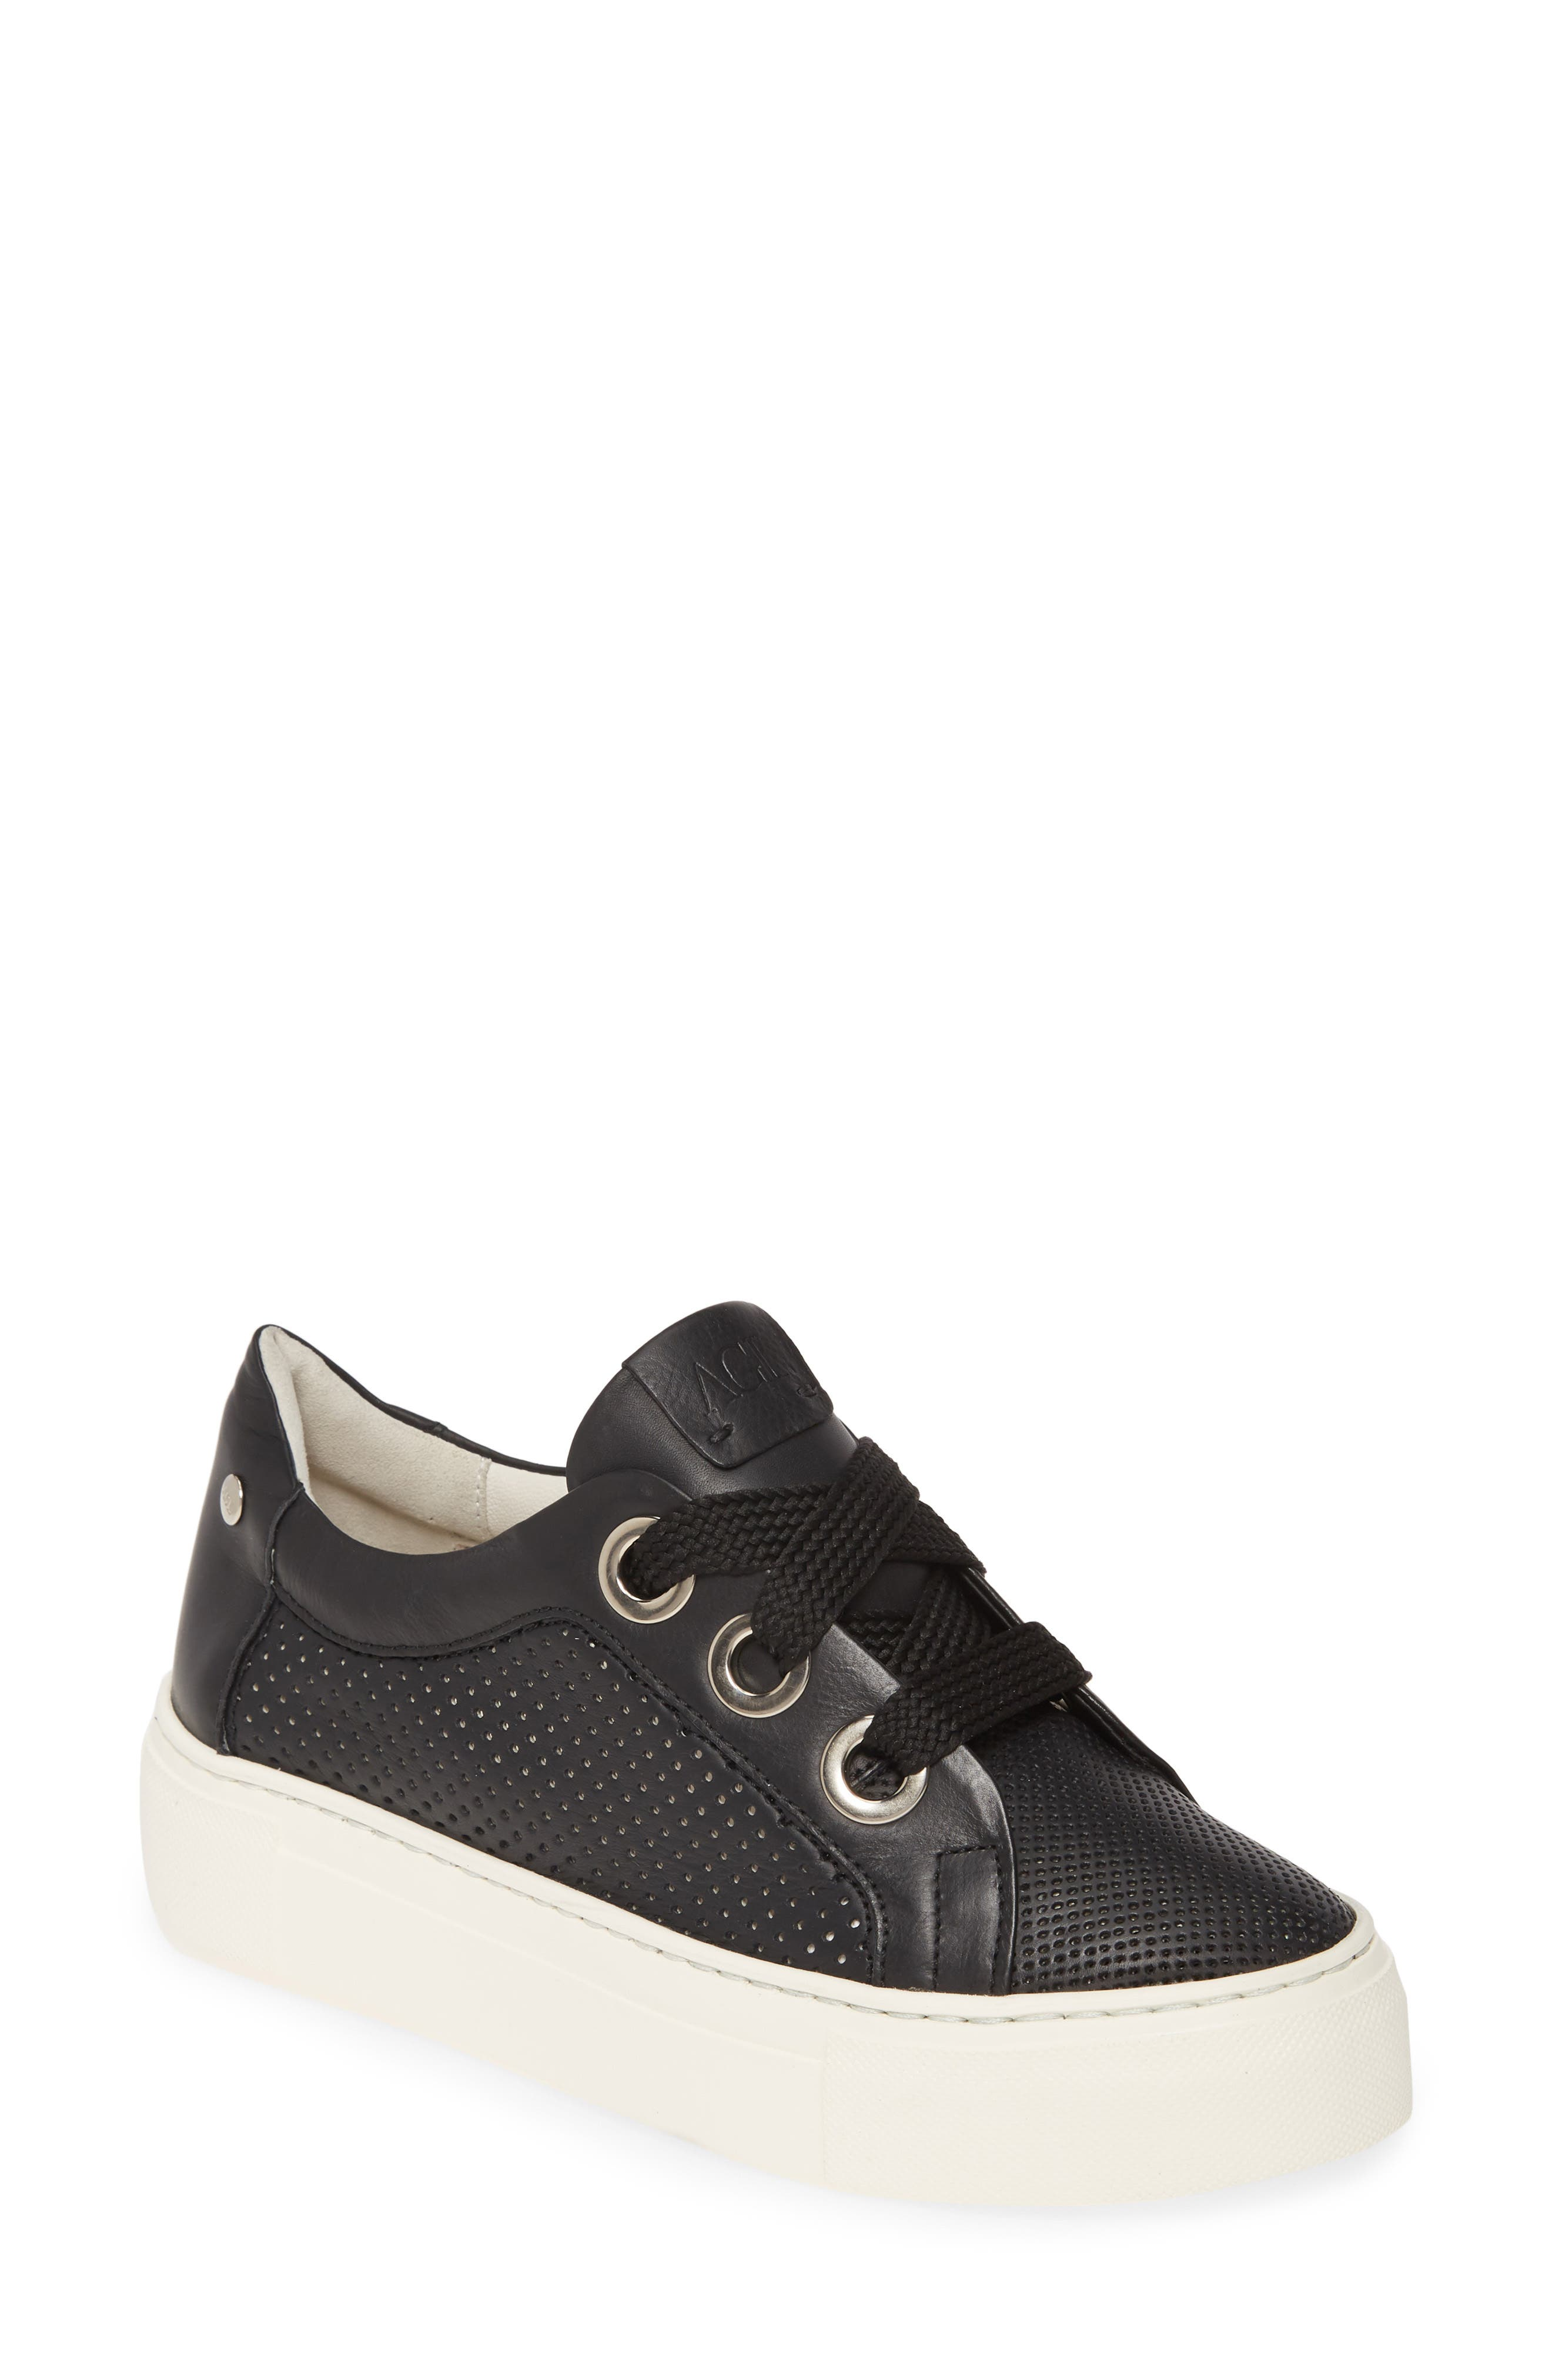 Women's AGL Shoes   Nordstrom